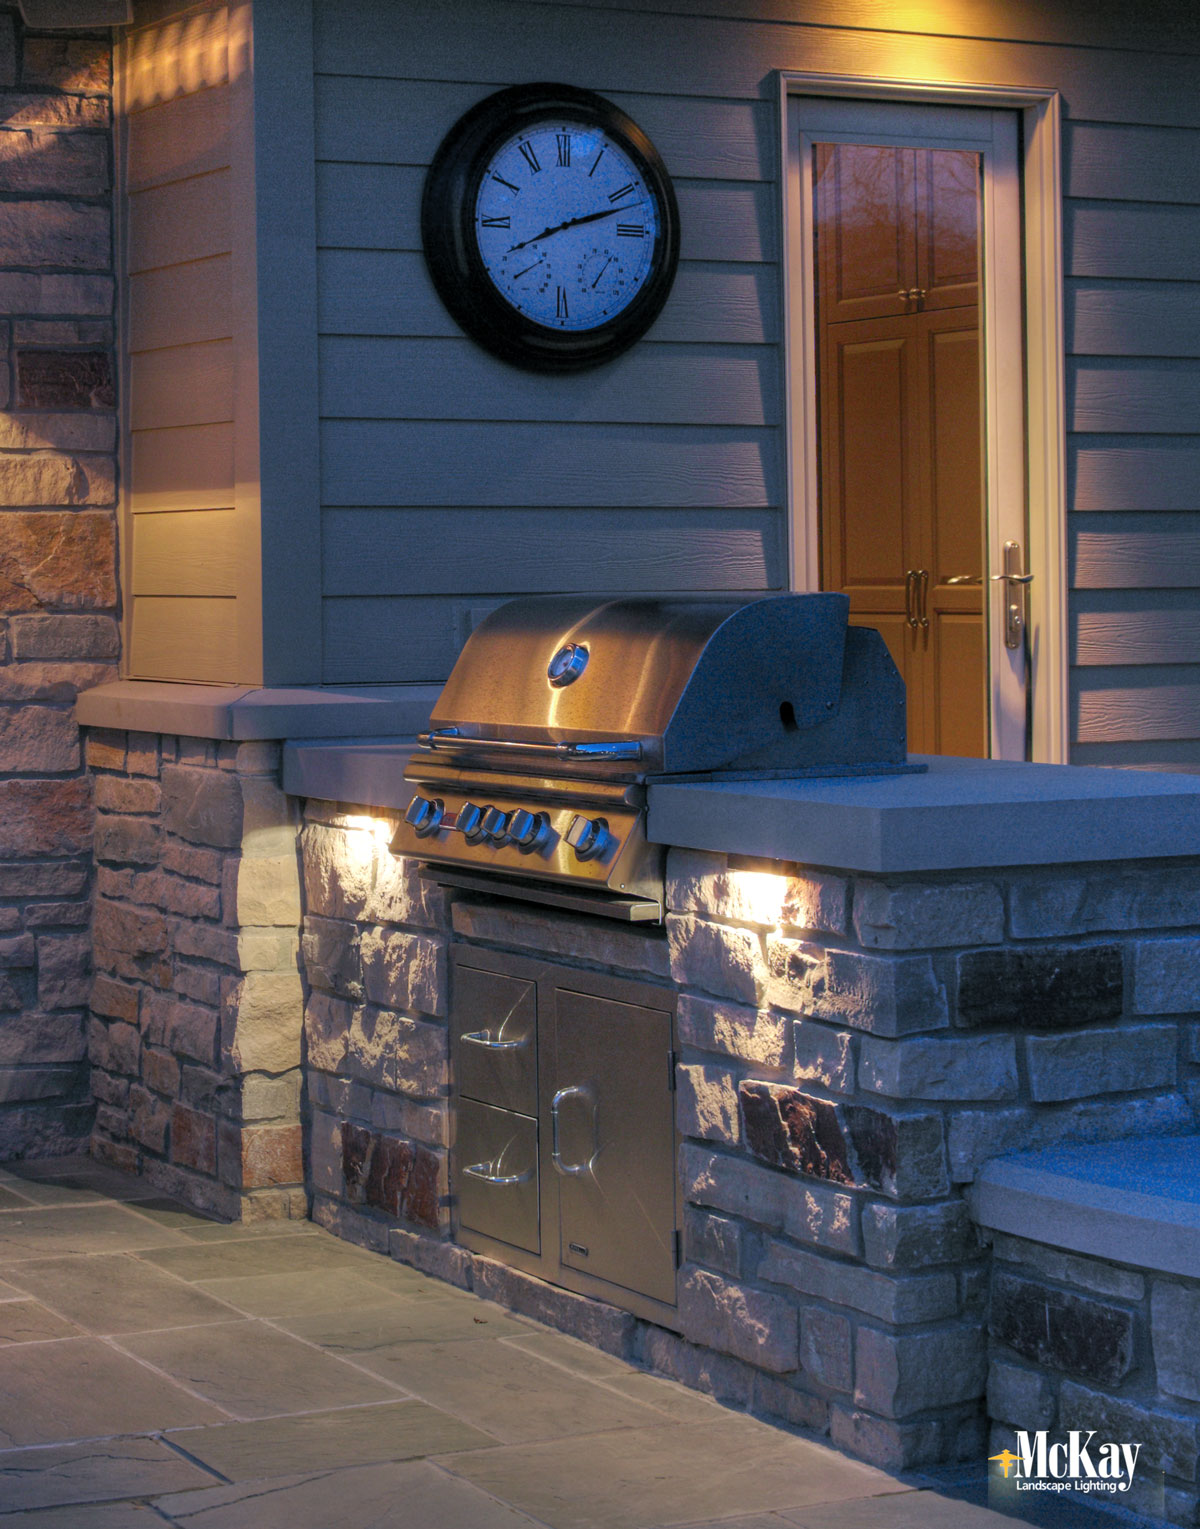 Outdoor Grill Lighting Under the Counter Ideas - Click to see more... | McKay Landscape Lighting Omaha Nebraska